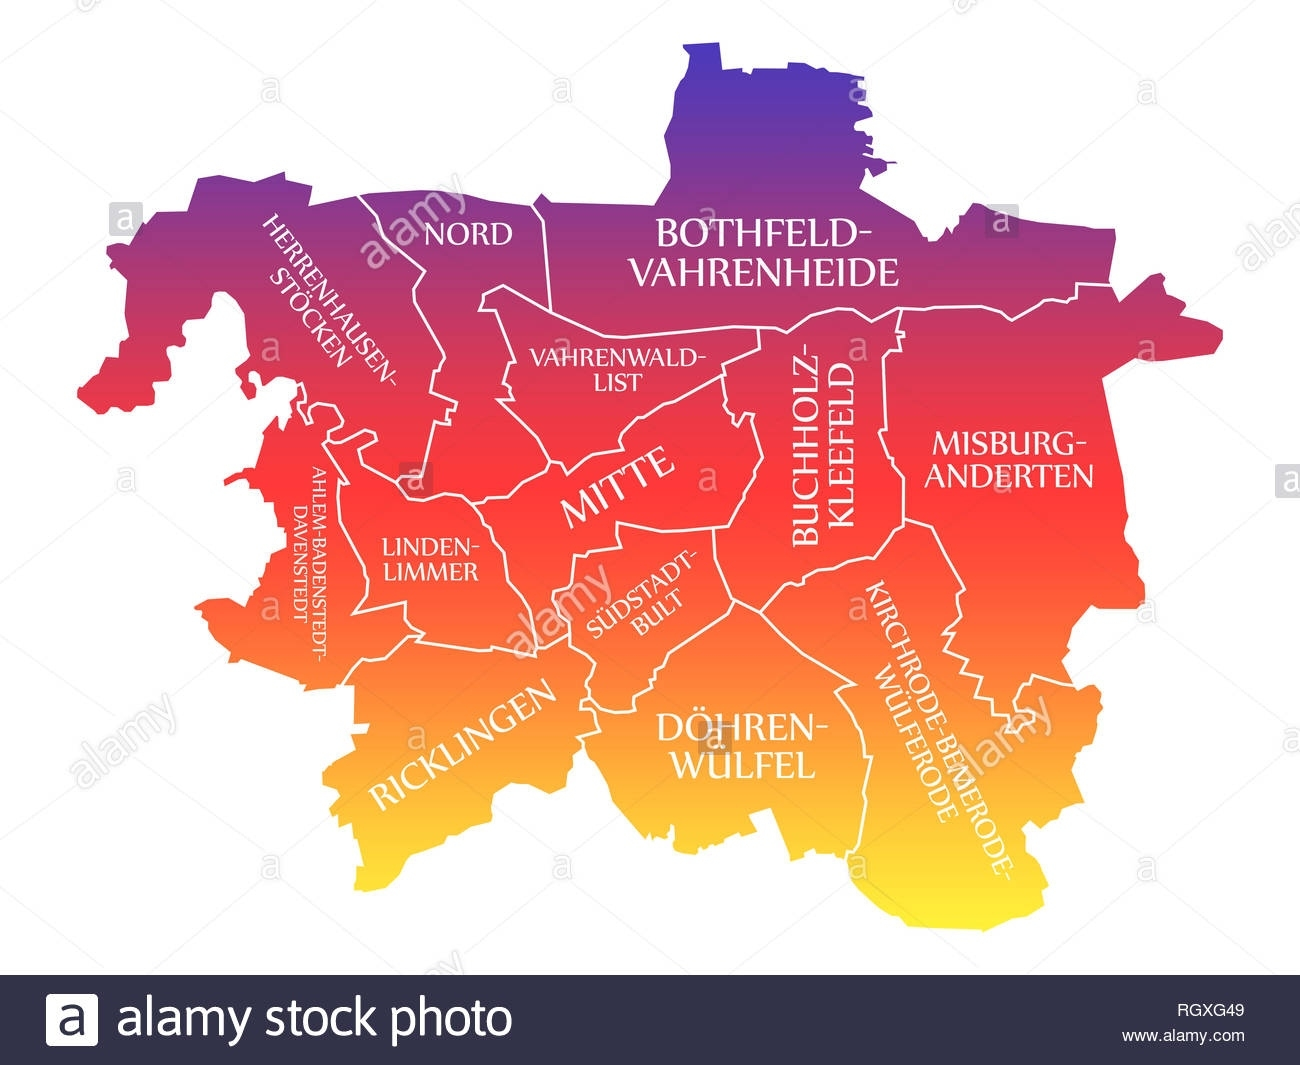 Hannover City Map Germany De Labelled Rainbow Colored Illustration throughout Hannover Germany Map